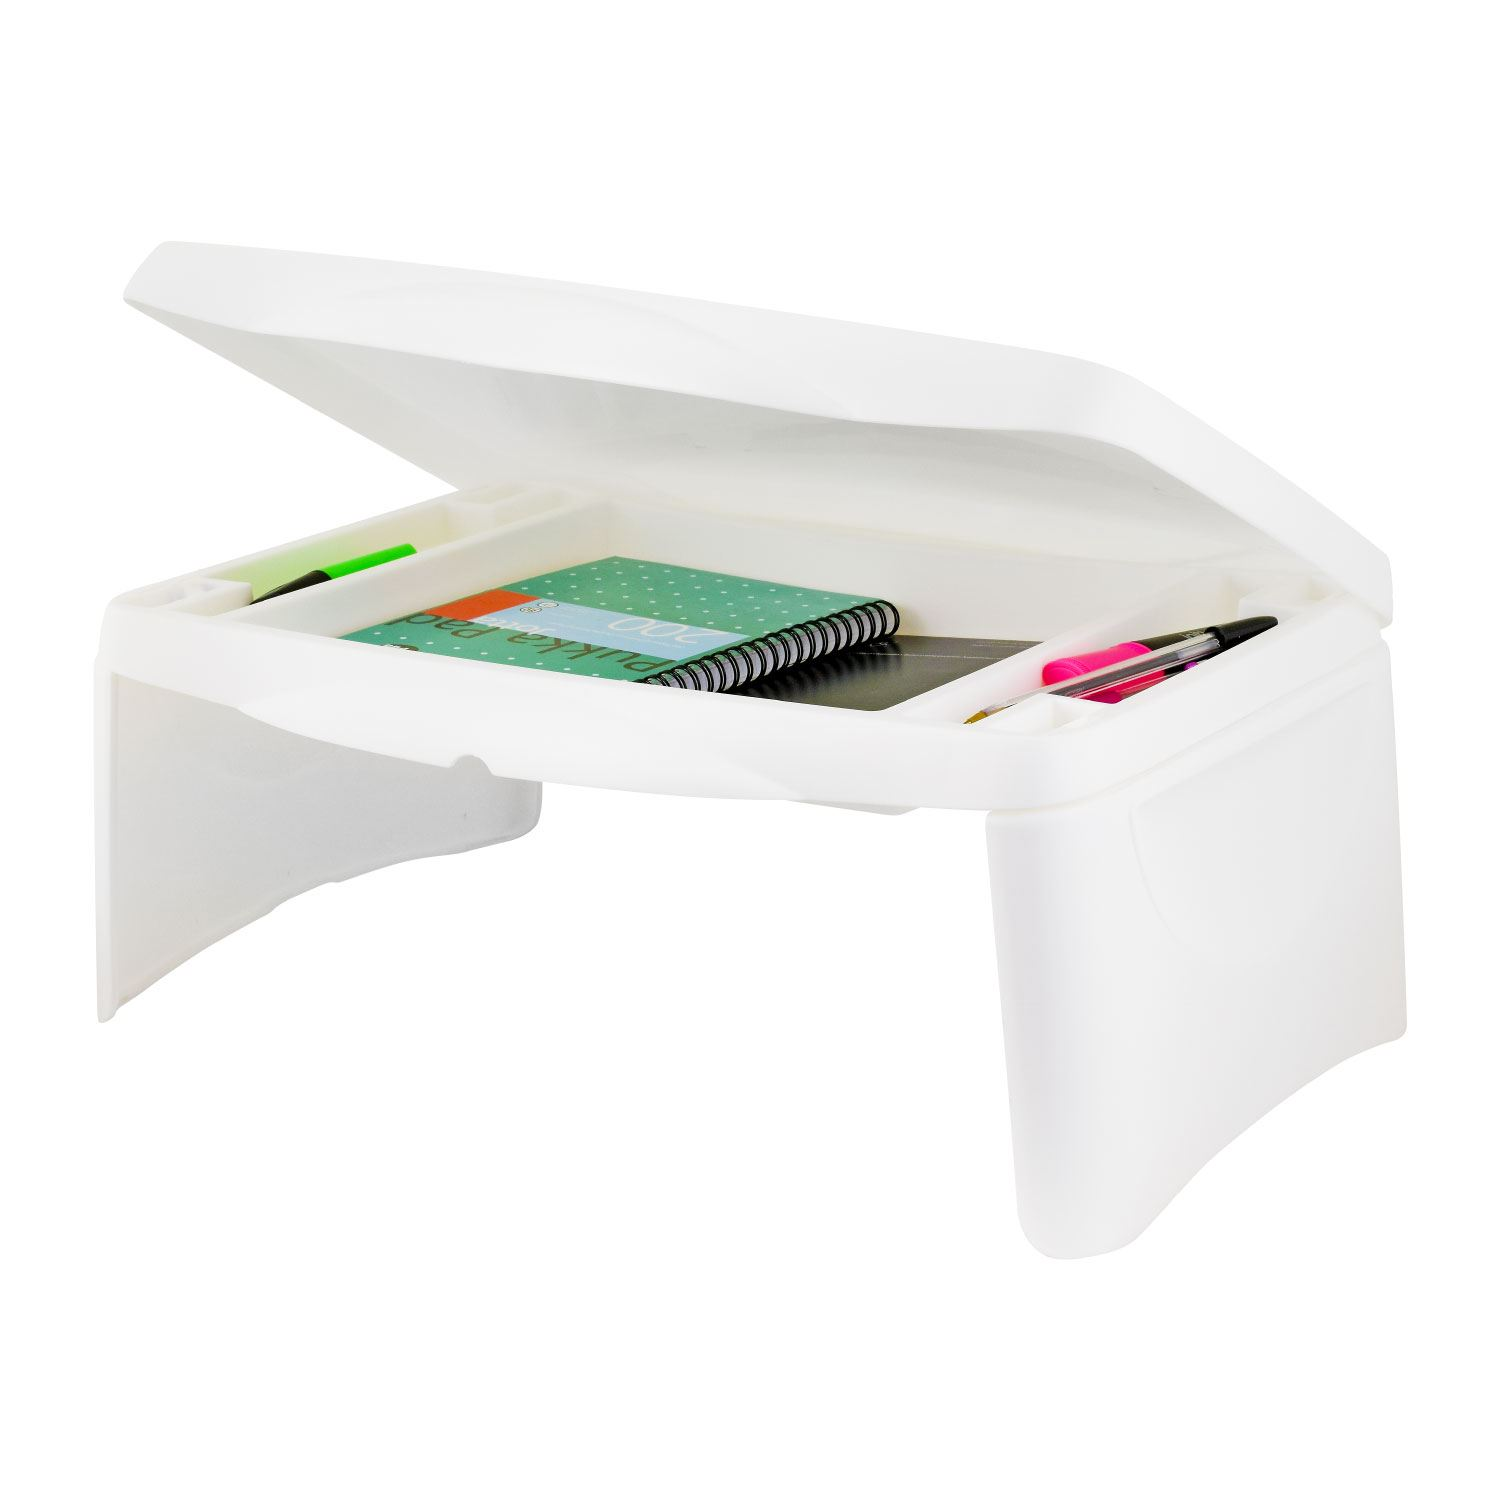 Fullsize Of Lap Desk With Storage